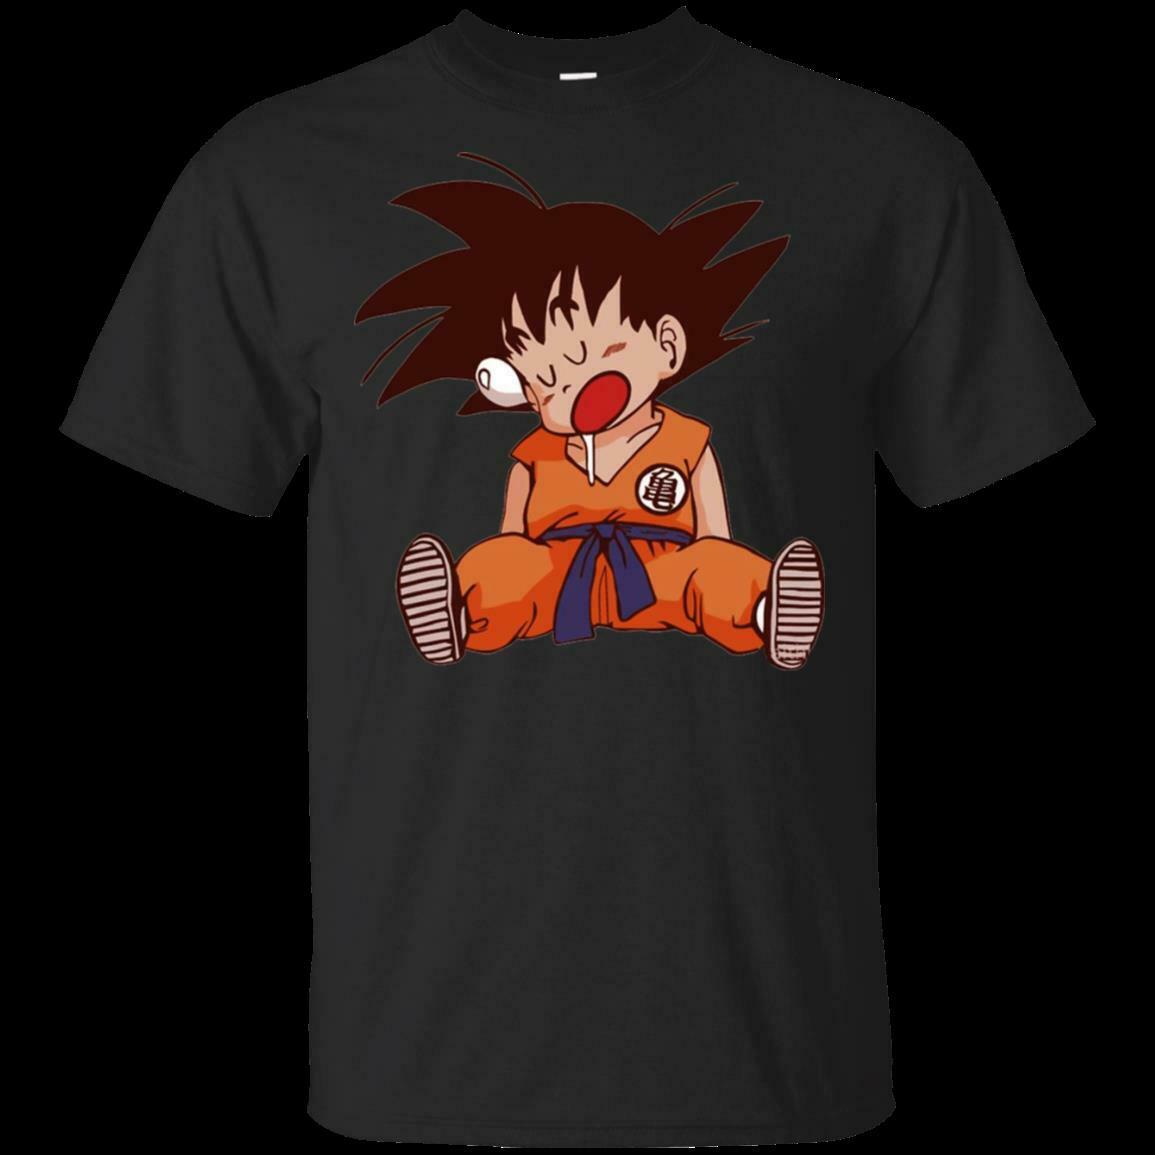 Funny Goku Kid <font><b>Dragon</b></font> <font><b>Ball</b></font> Z Saiyan Anime Japan <font><b>T</b></font> <font><b>shirt</b></font> Size Men's S-<font><b>5XL</b></font> image